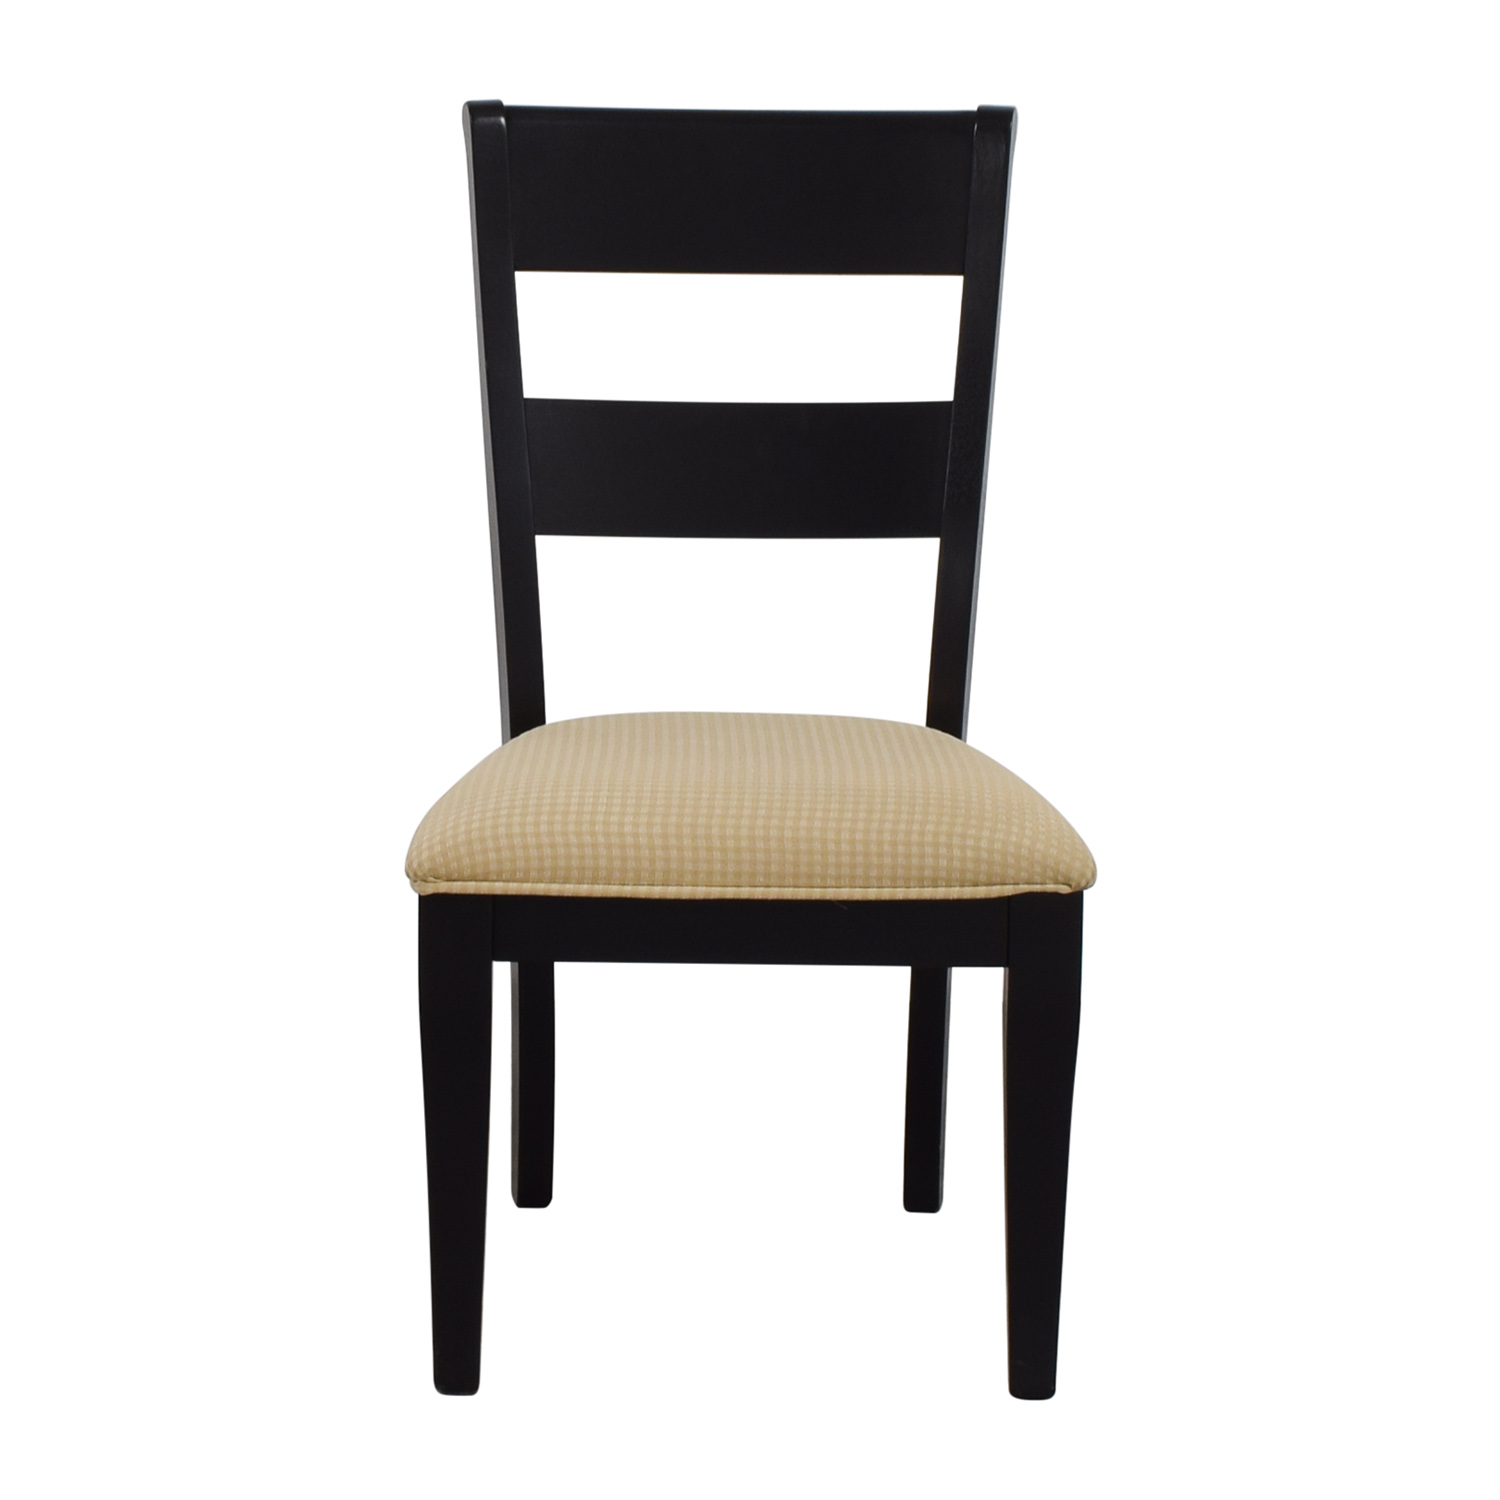 Raymour & Flanigan Black Chair with Beige Check Upholstery Raymour & Flanigan